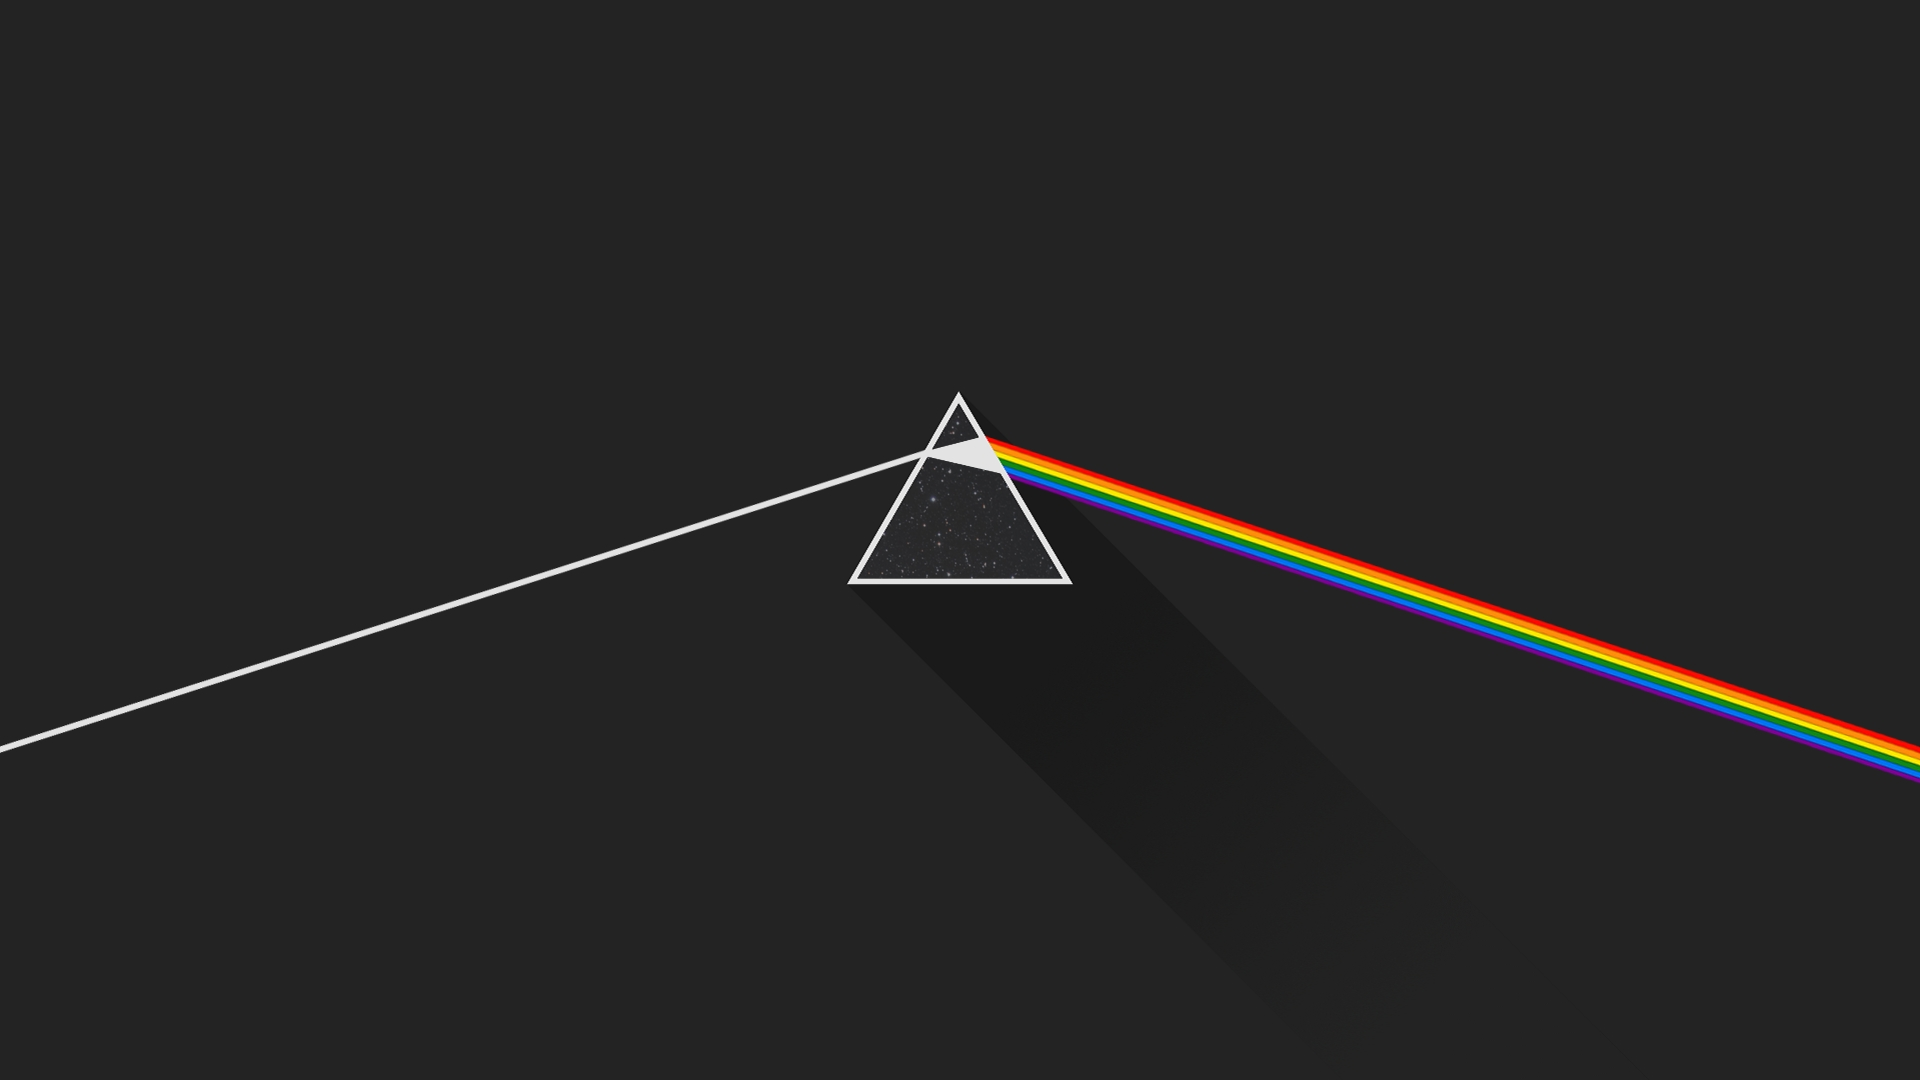 pink floyd - the dark side of the moon [1920x1080] : wallpapers